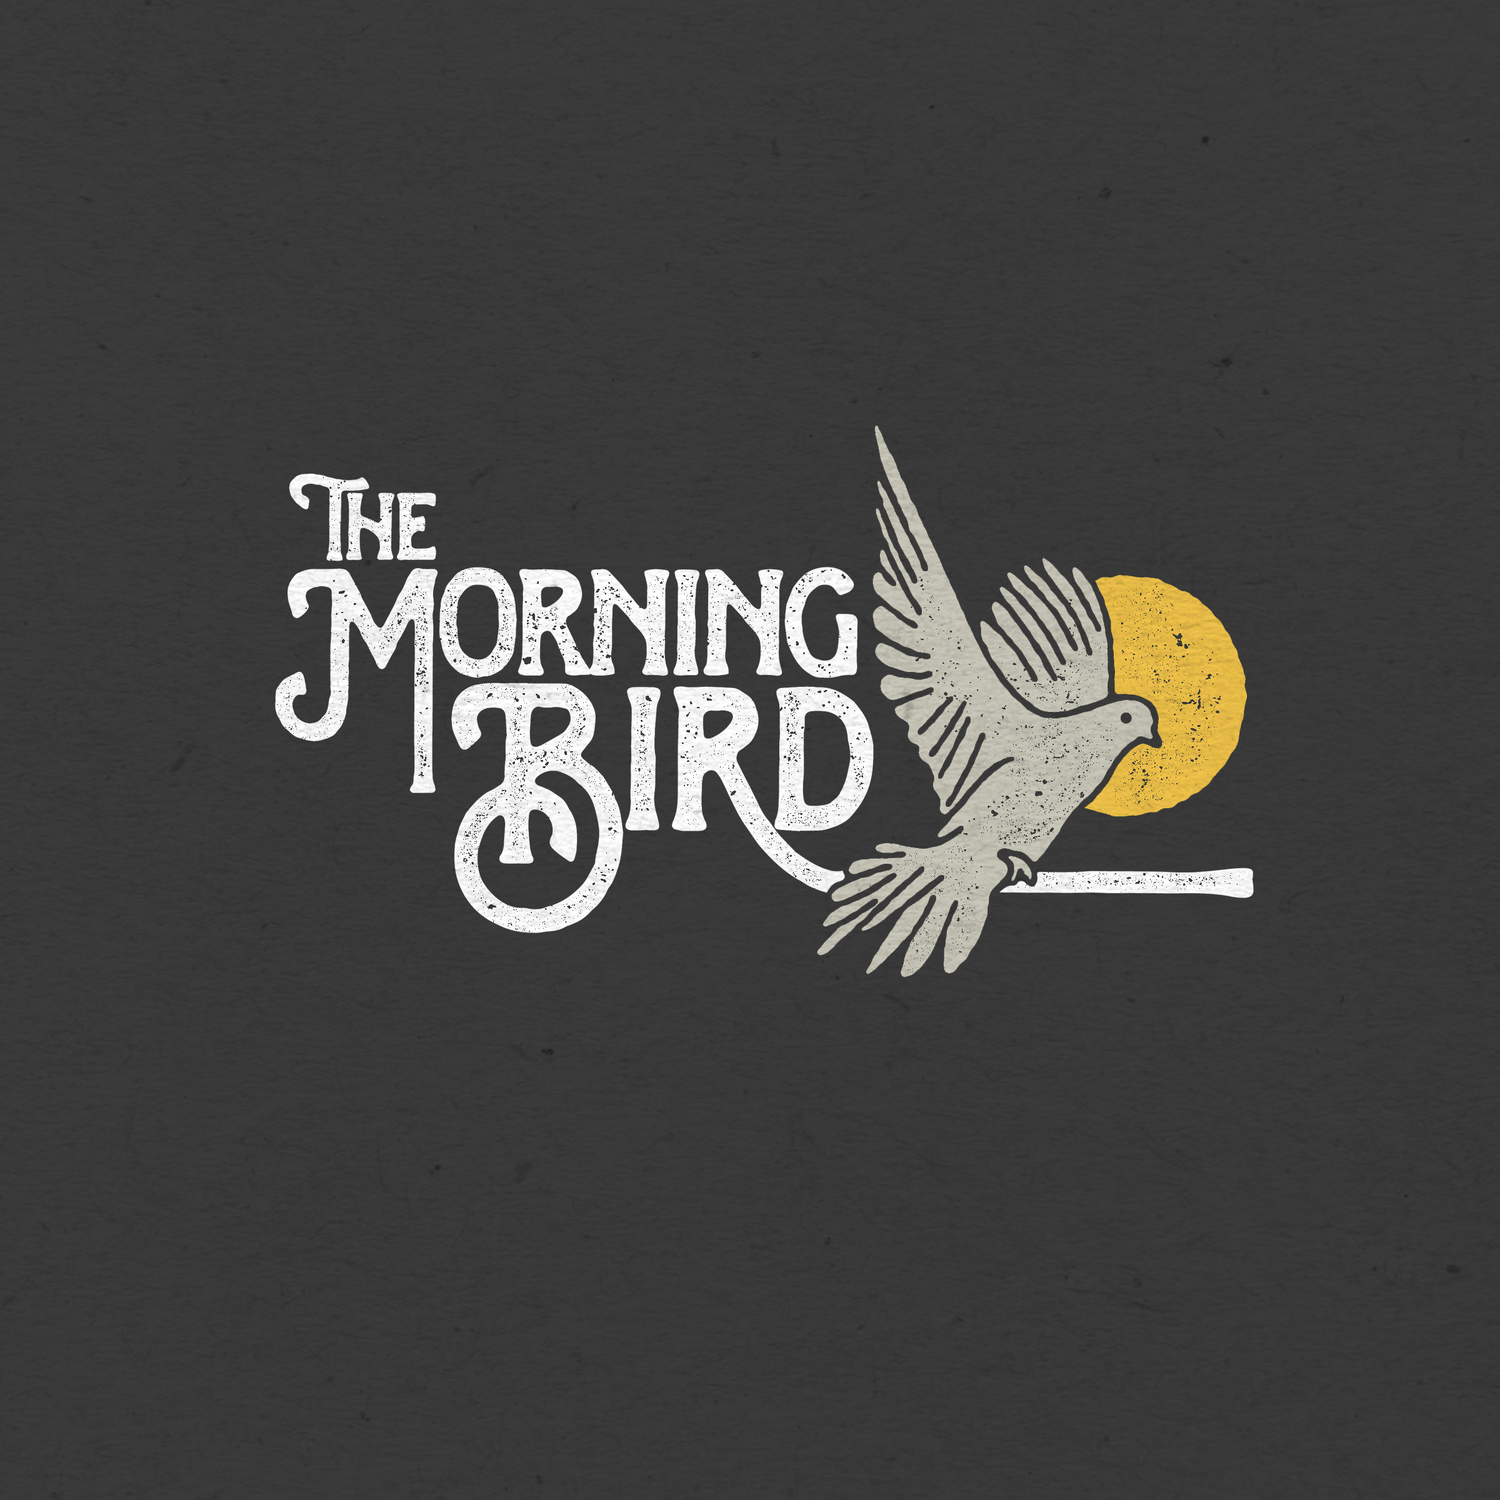 The Morning Bird